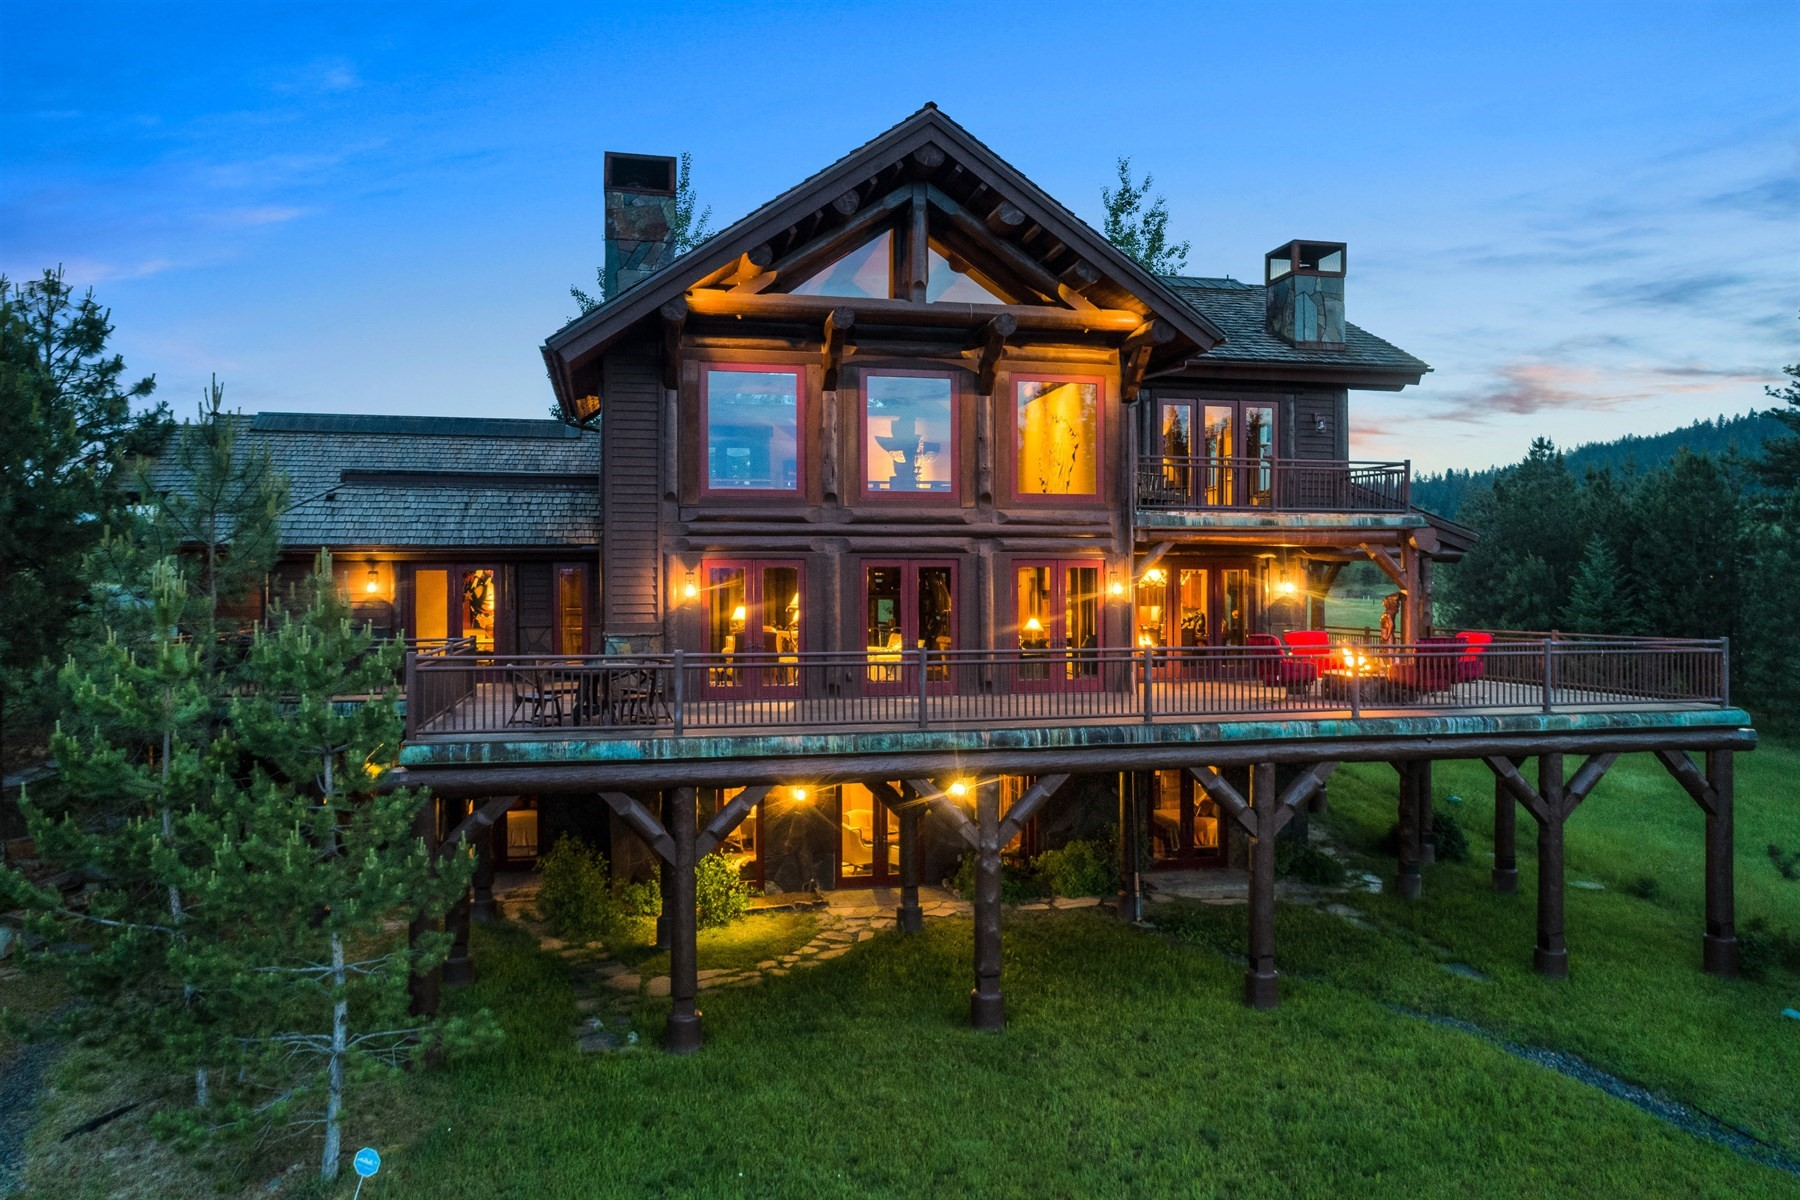 Single Family Homes for Active at Exceptionally Designed Rustic Retreat 16692 S Lazurite Dr Coeur D Alene, Idaho 83814 United States